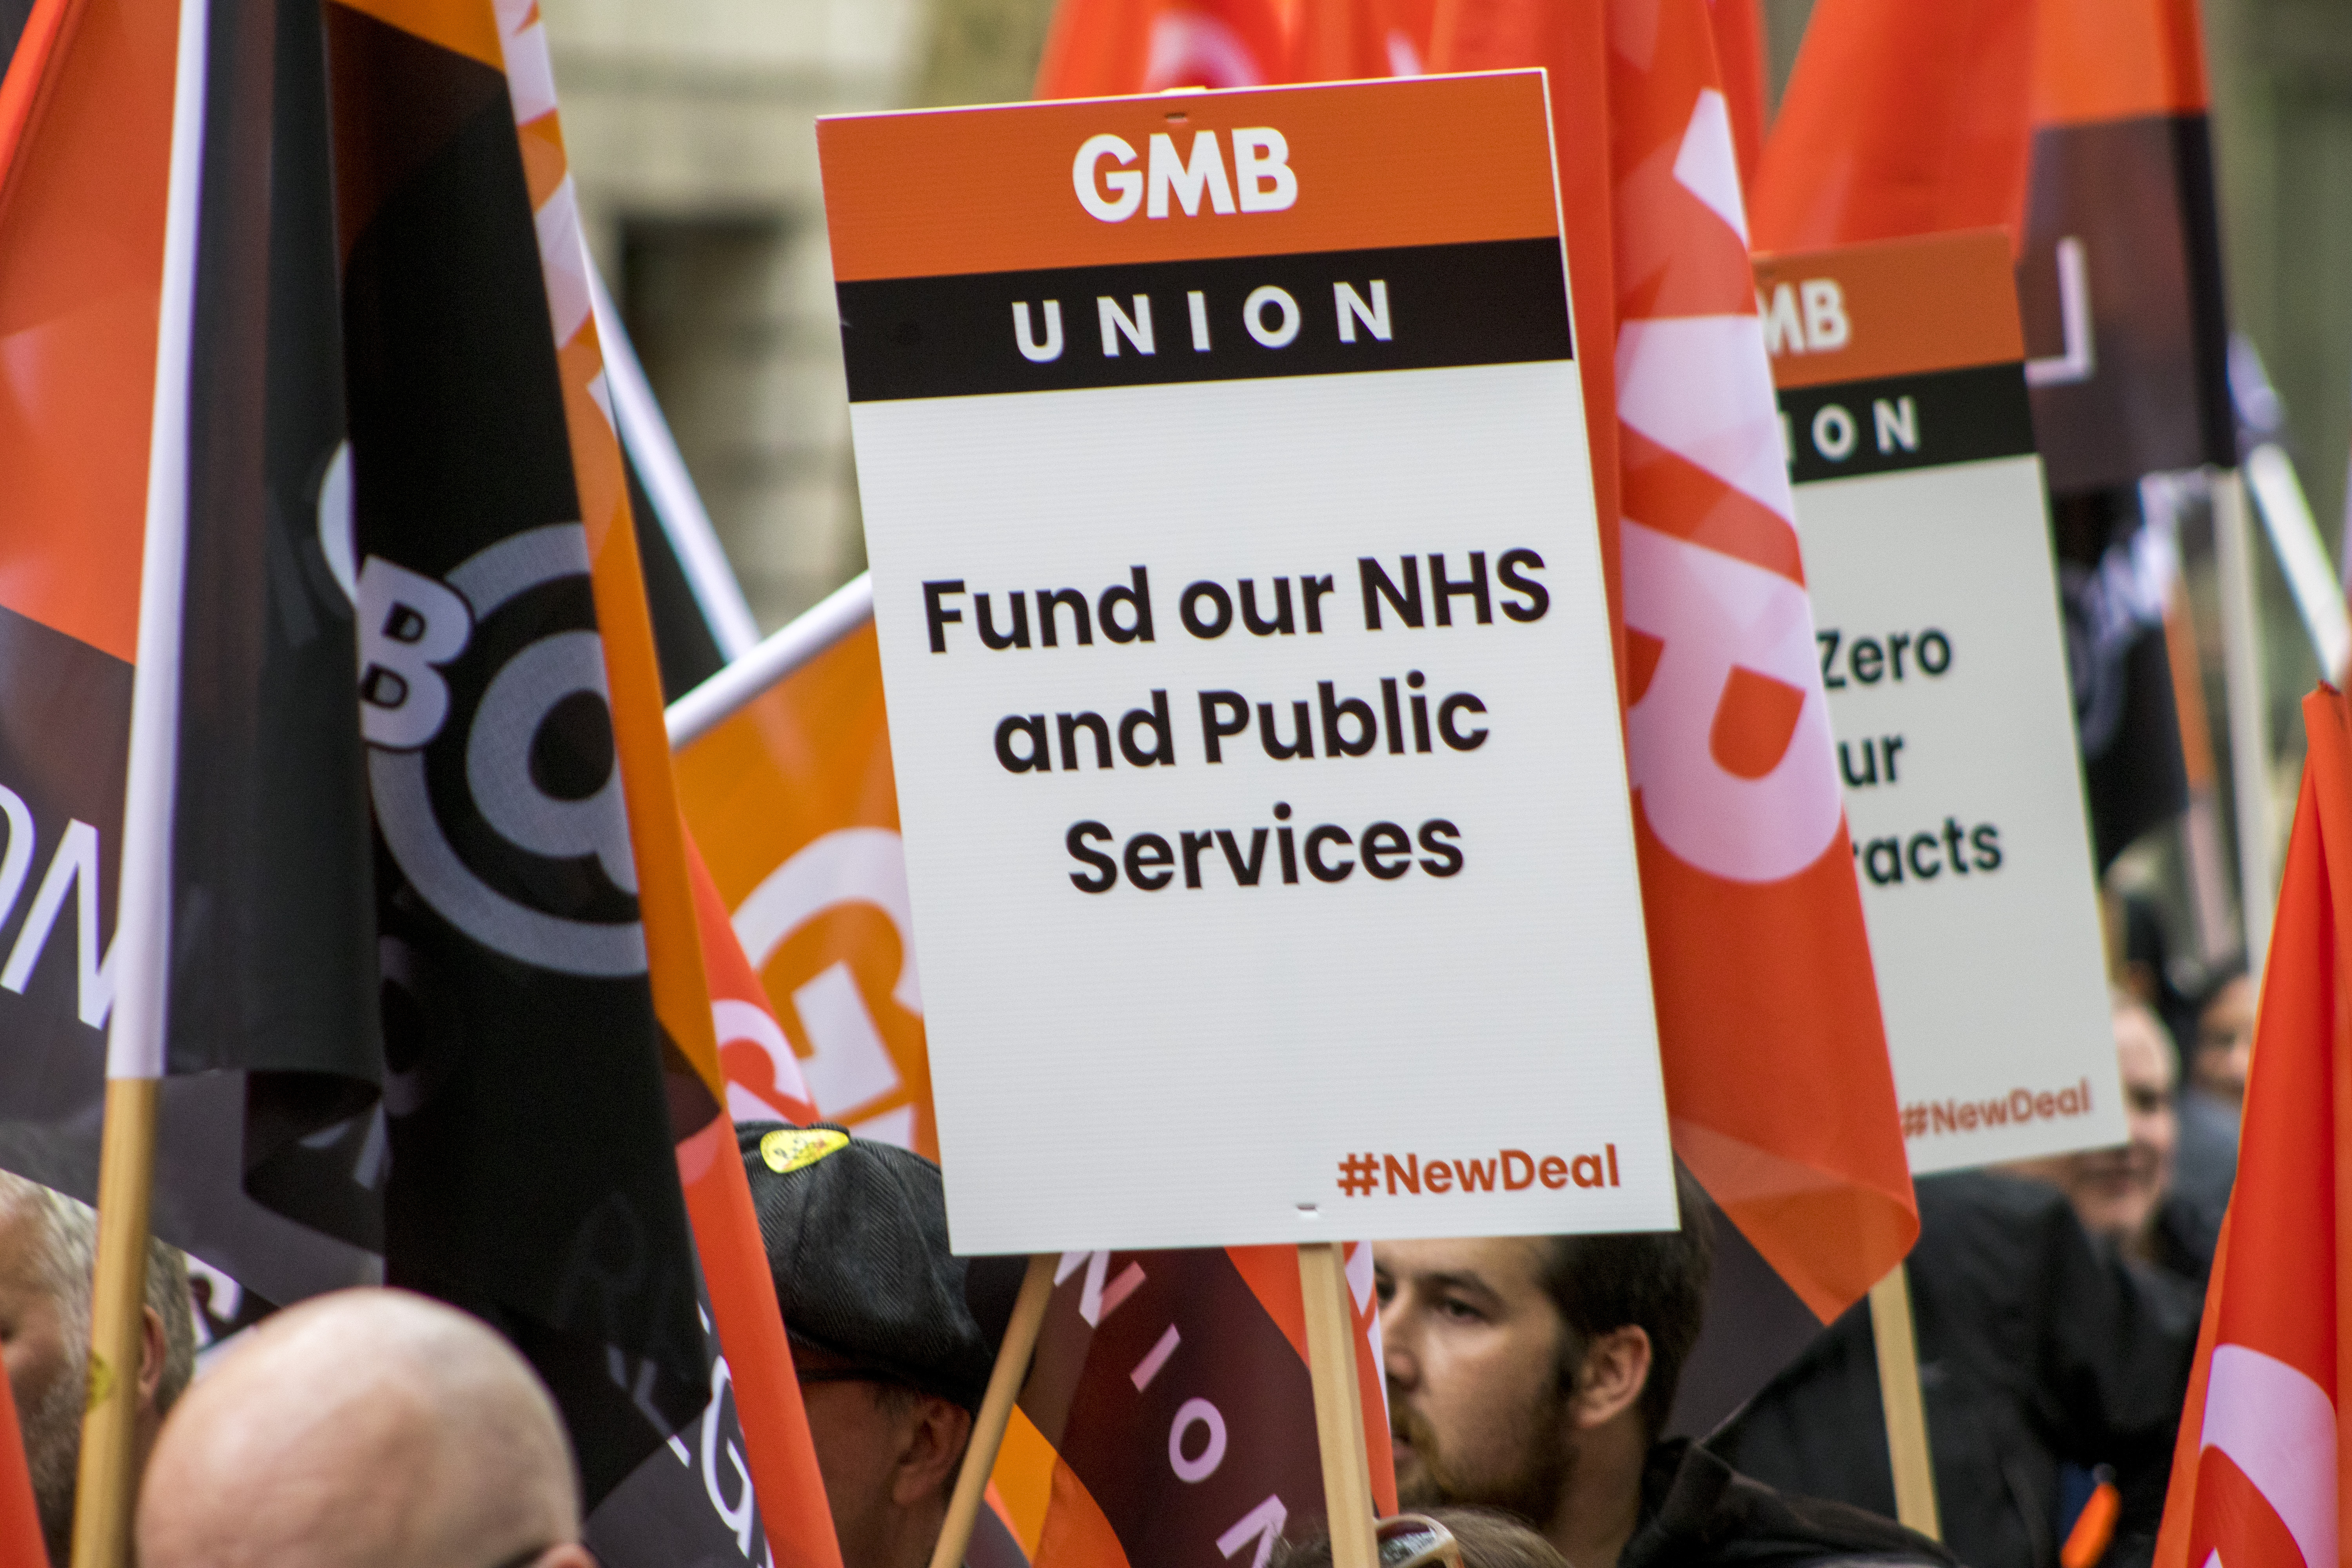 Fund our NHS and public services